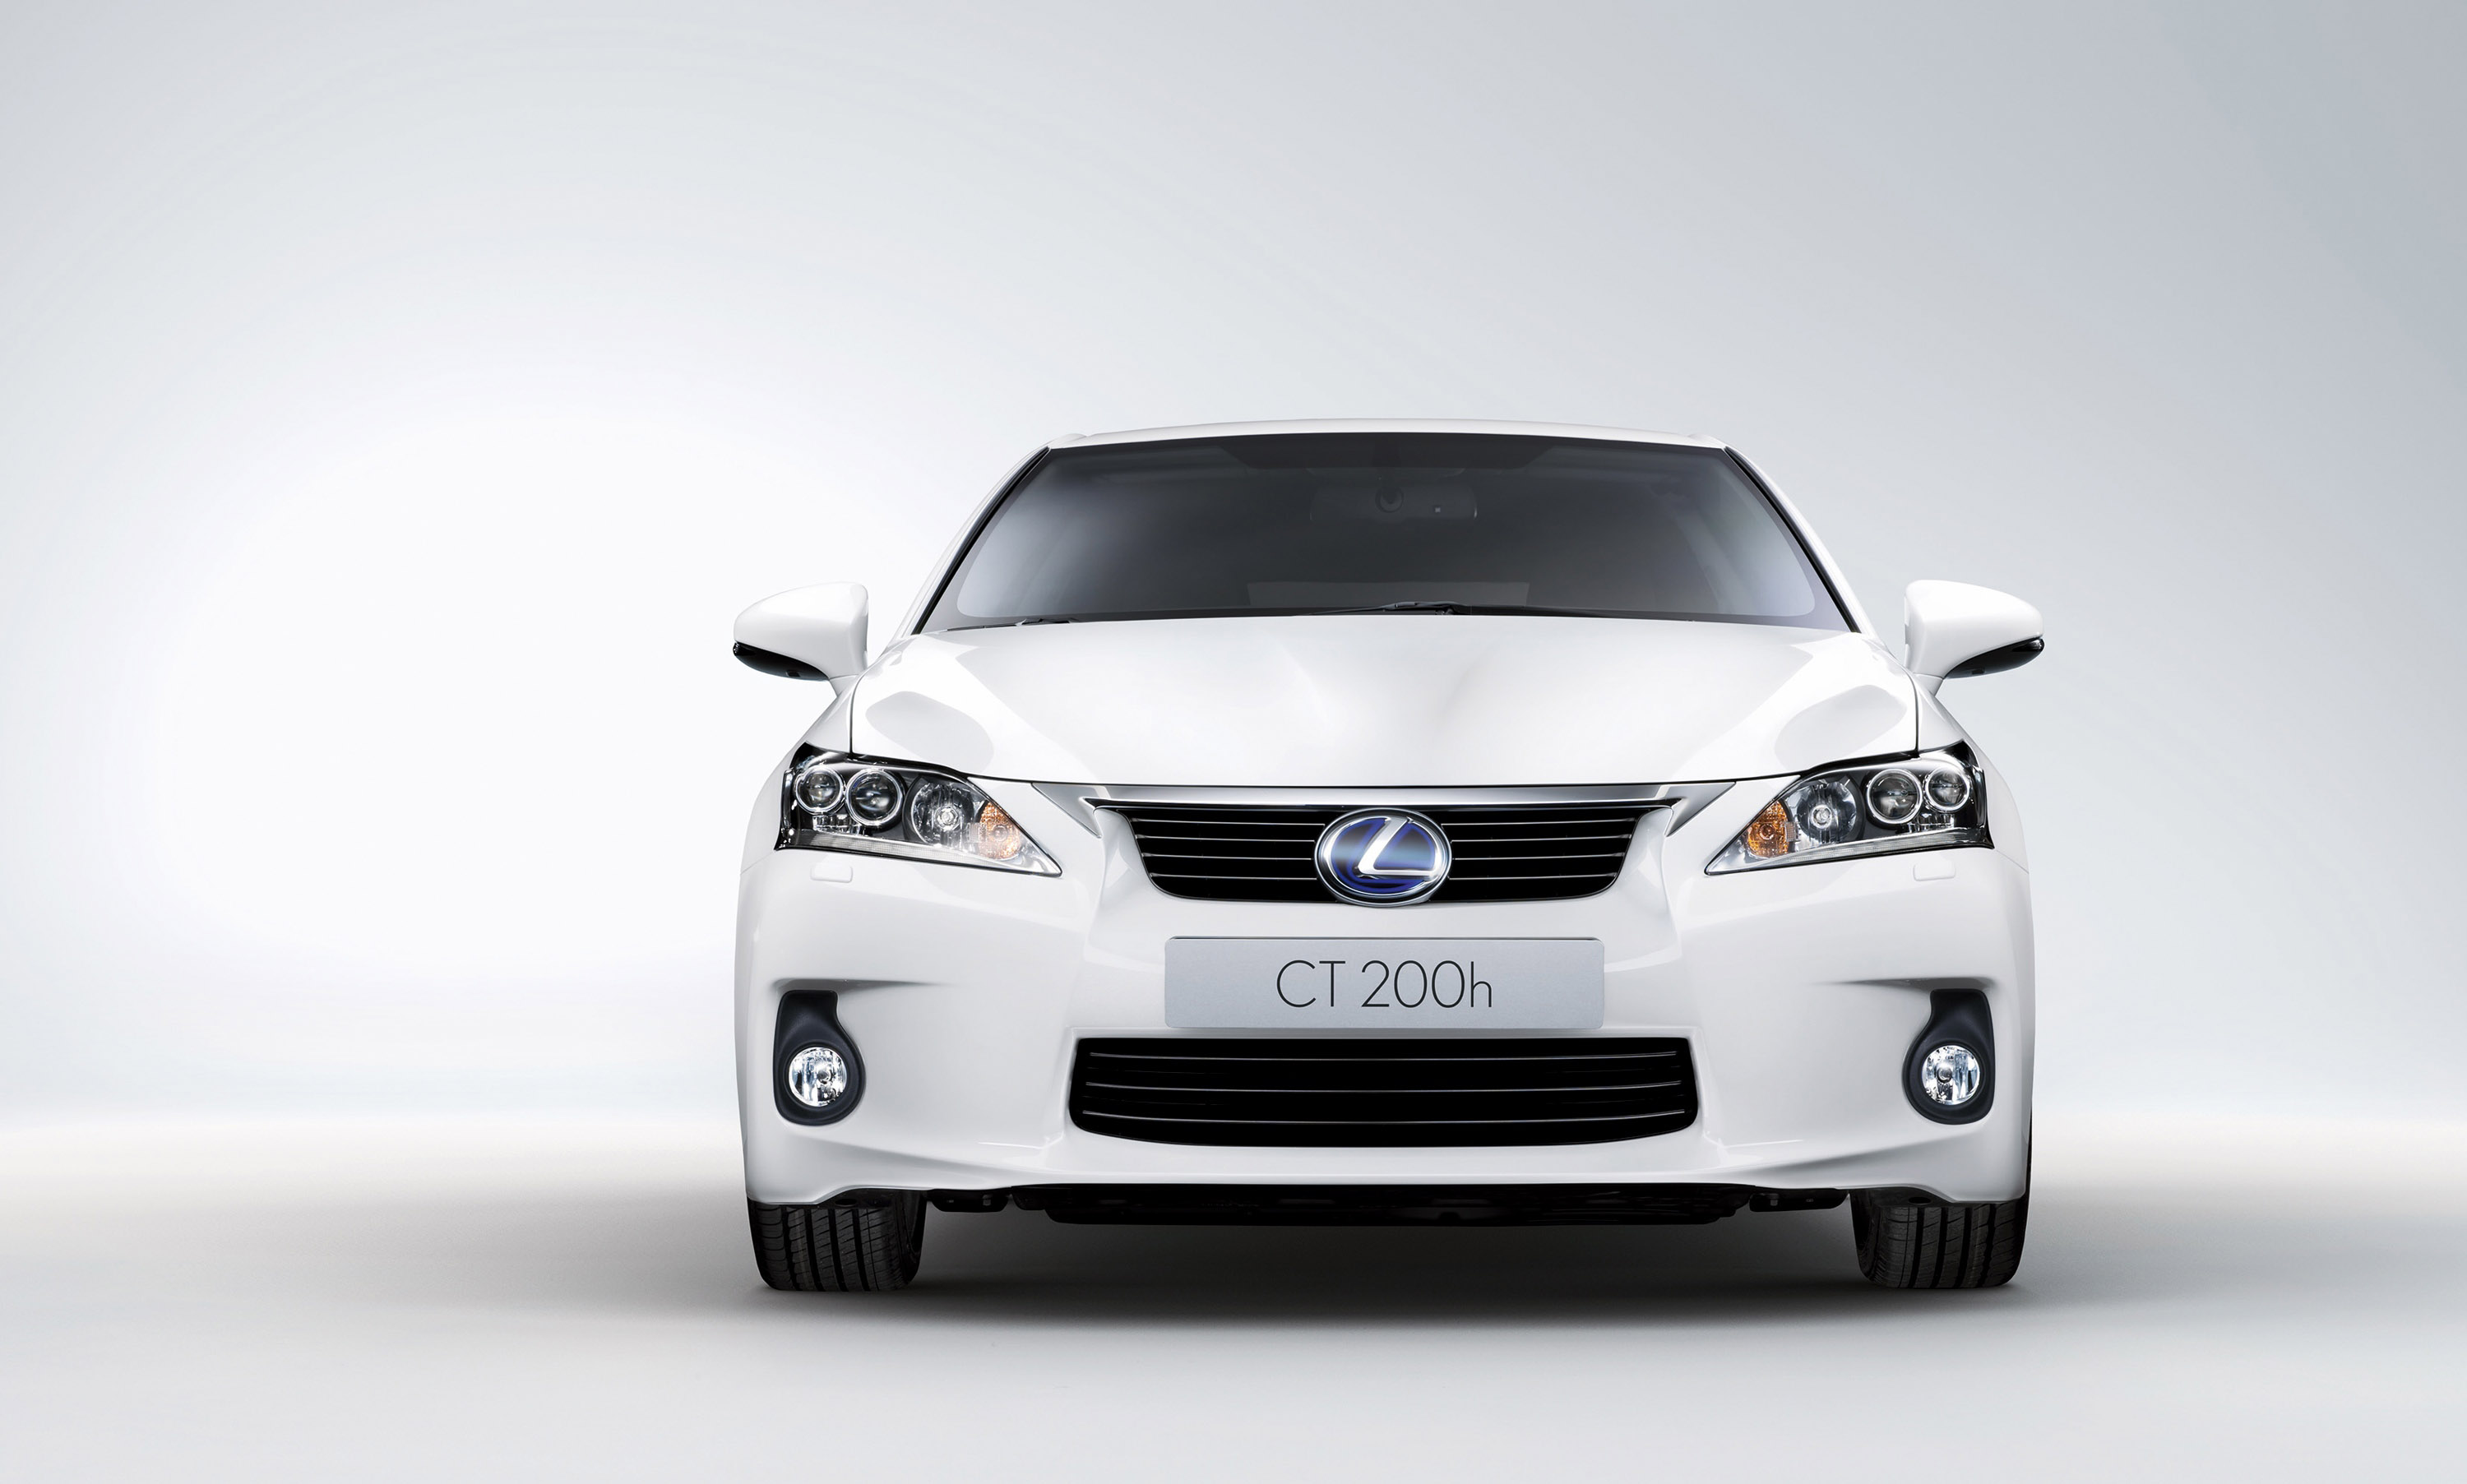 Lexus Ct200h Used >> Lexus CT 200h - superb efficiency and driving experience